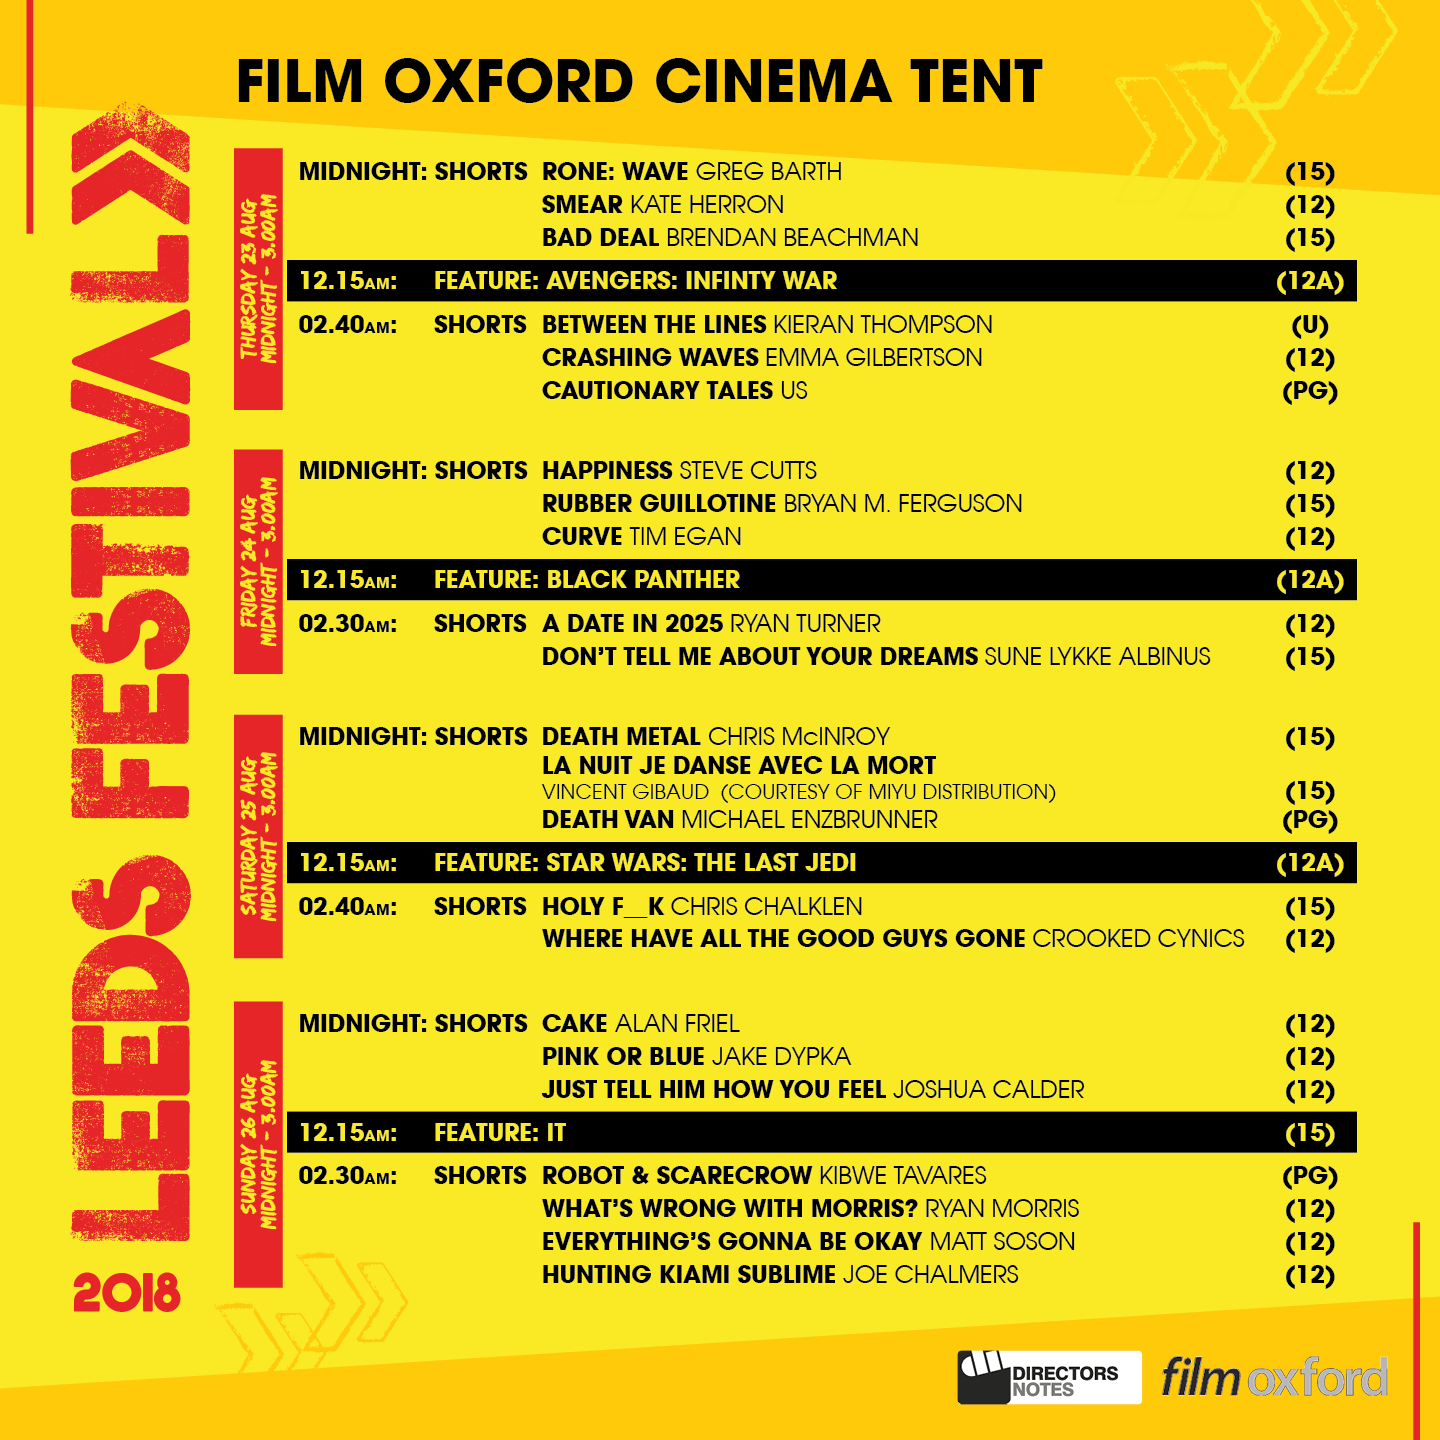 film oxford cinema tent leeds festival 2018